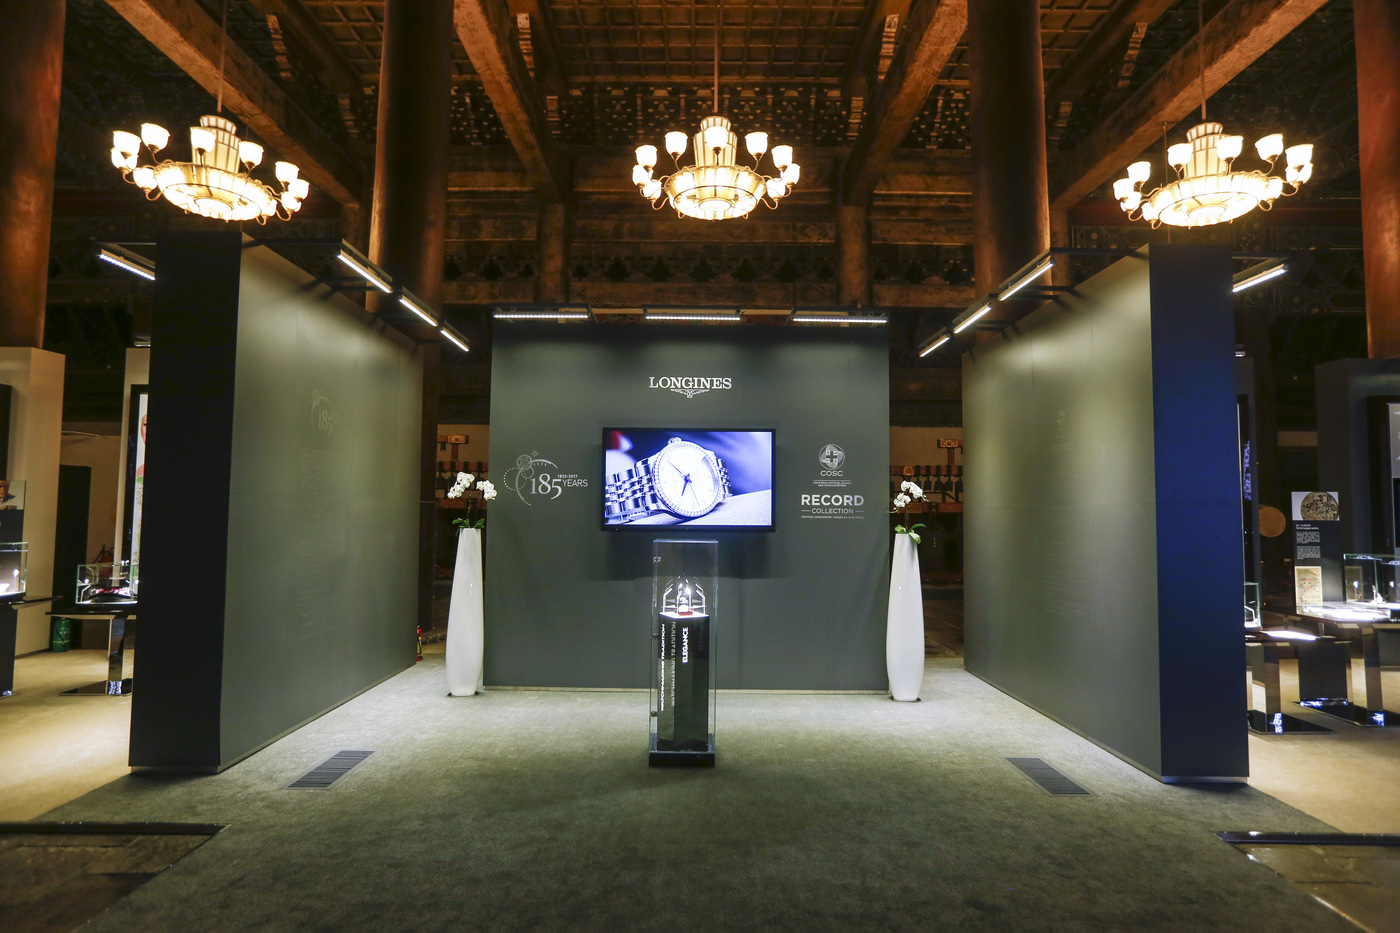 Longines Corporate Event: Longines launches new Record collection and celebrates its 185th Anniversary in Beijing 7